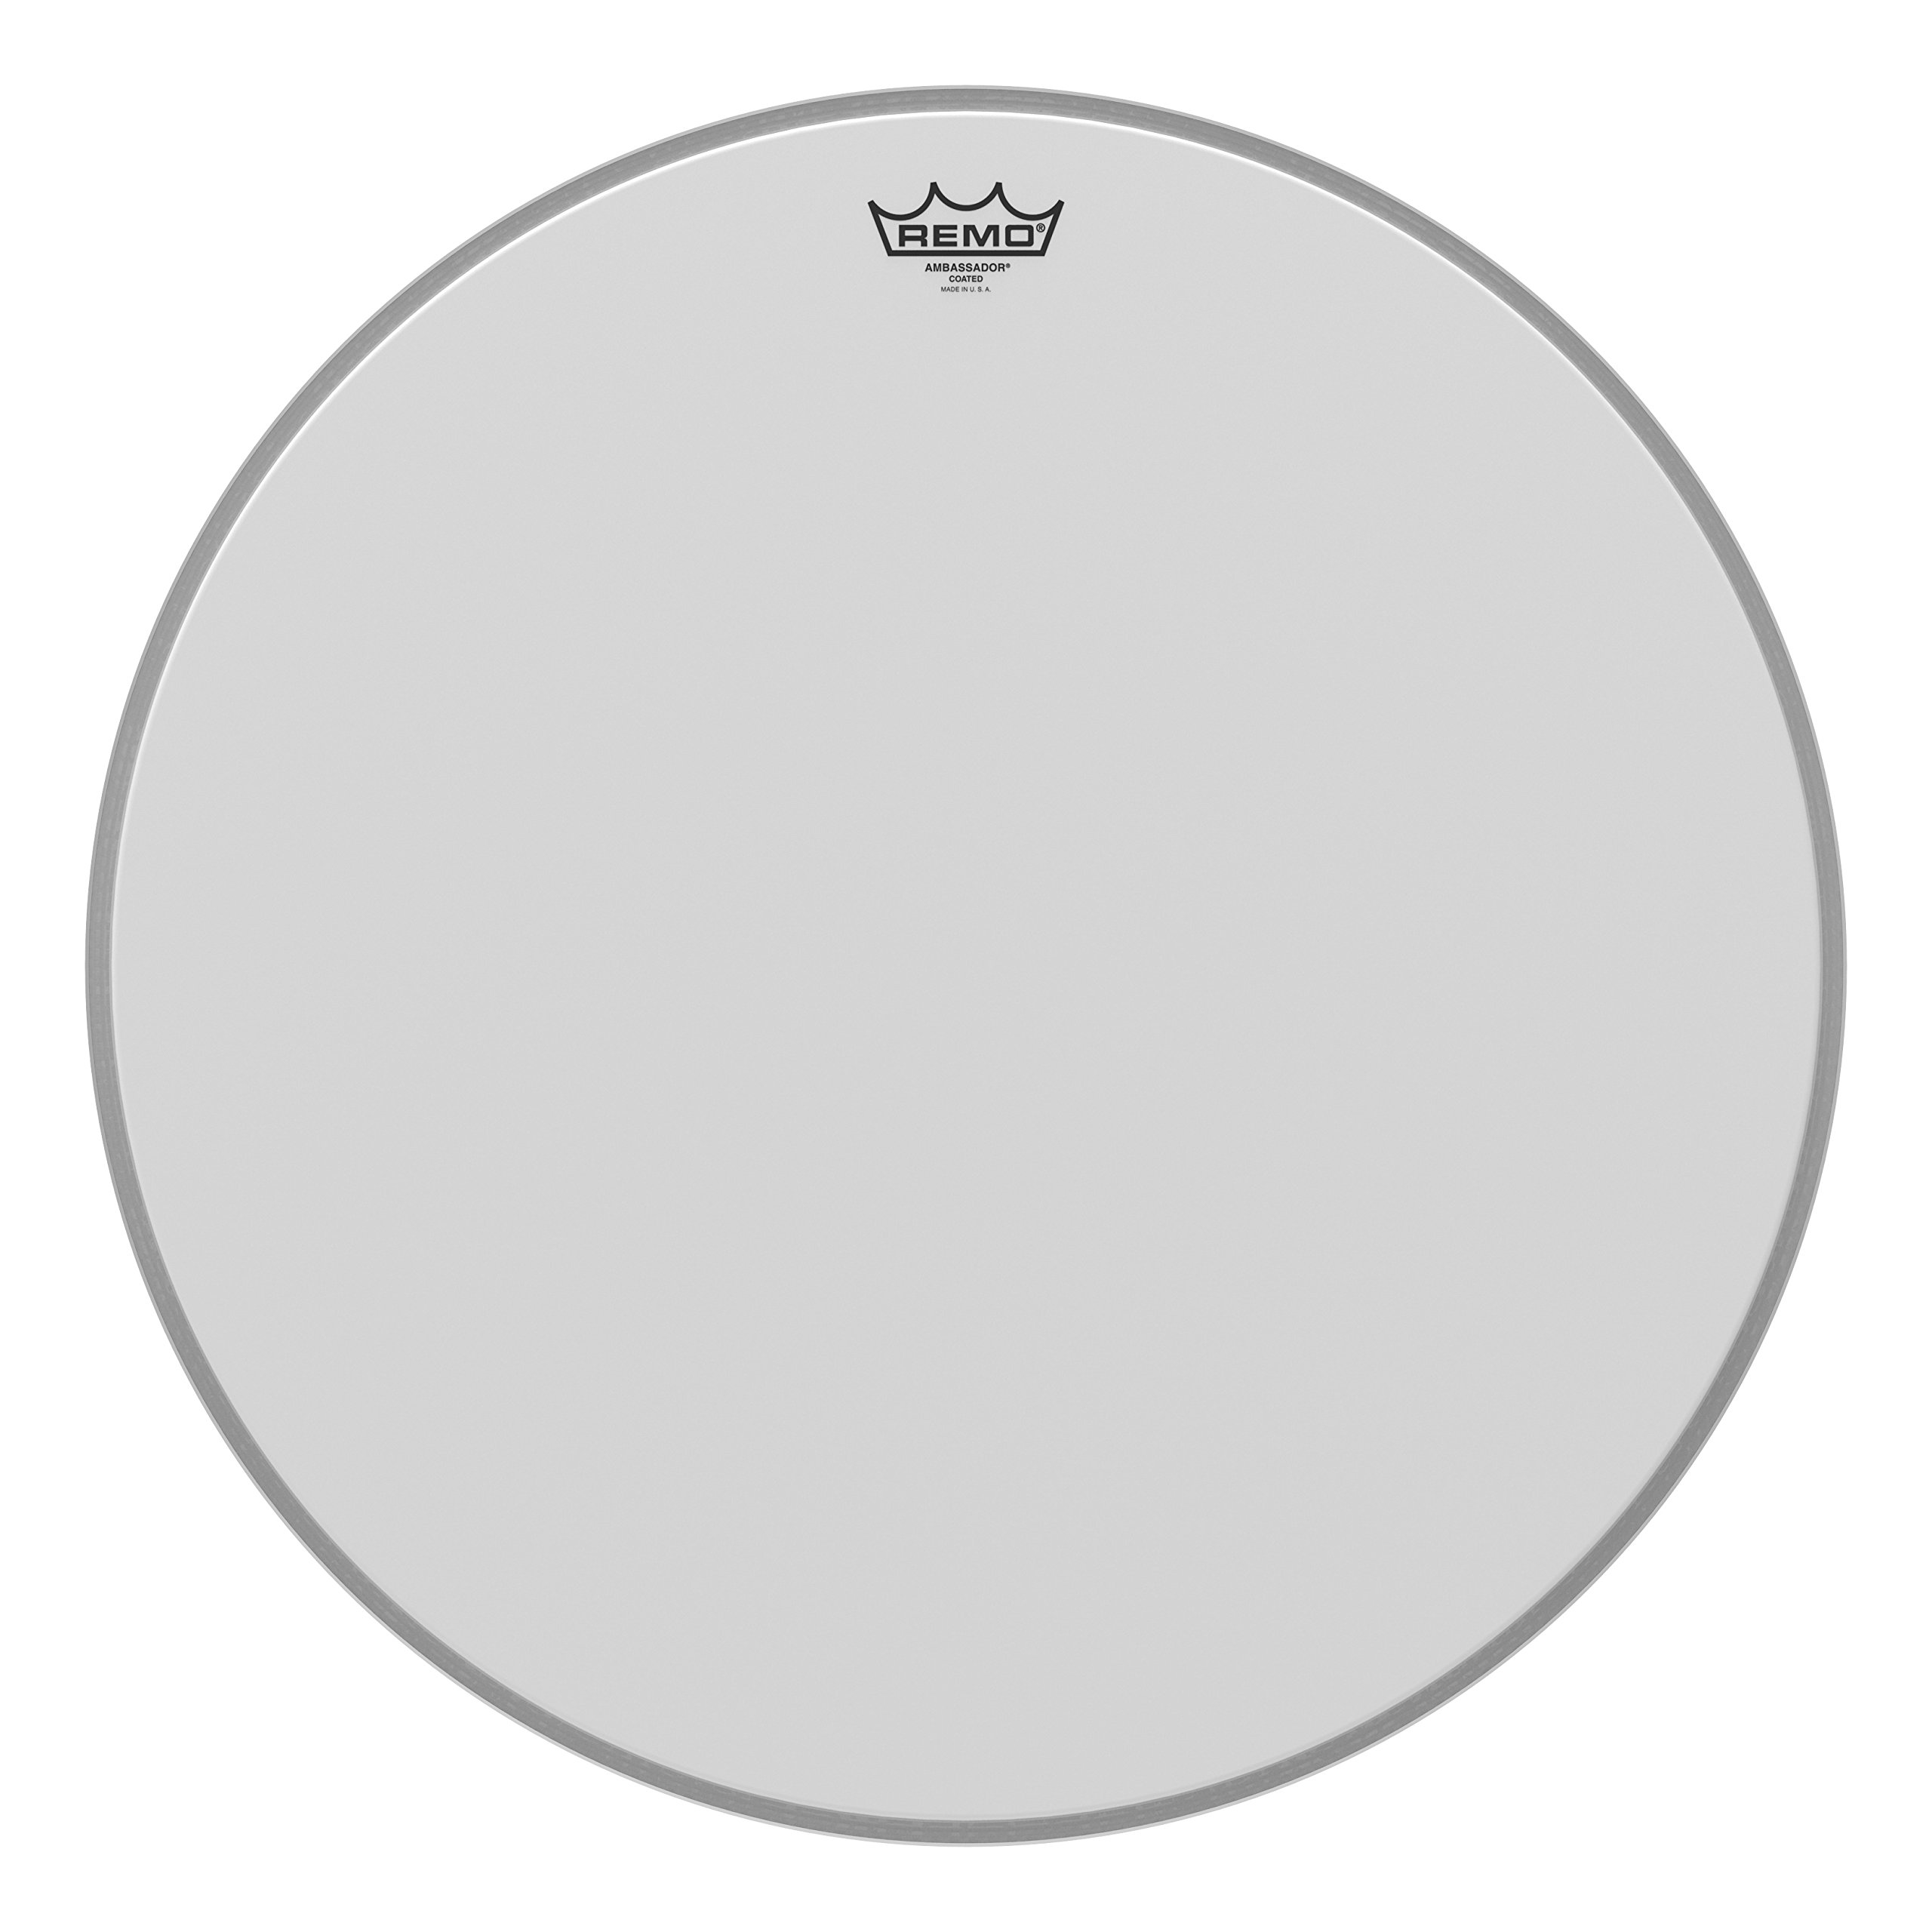 Remo Ambassador Coated Bass Drum Head - 22 Inch